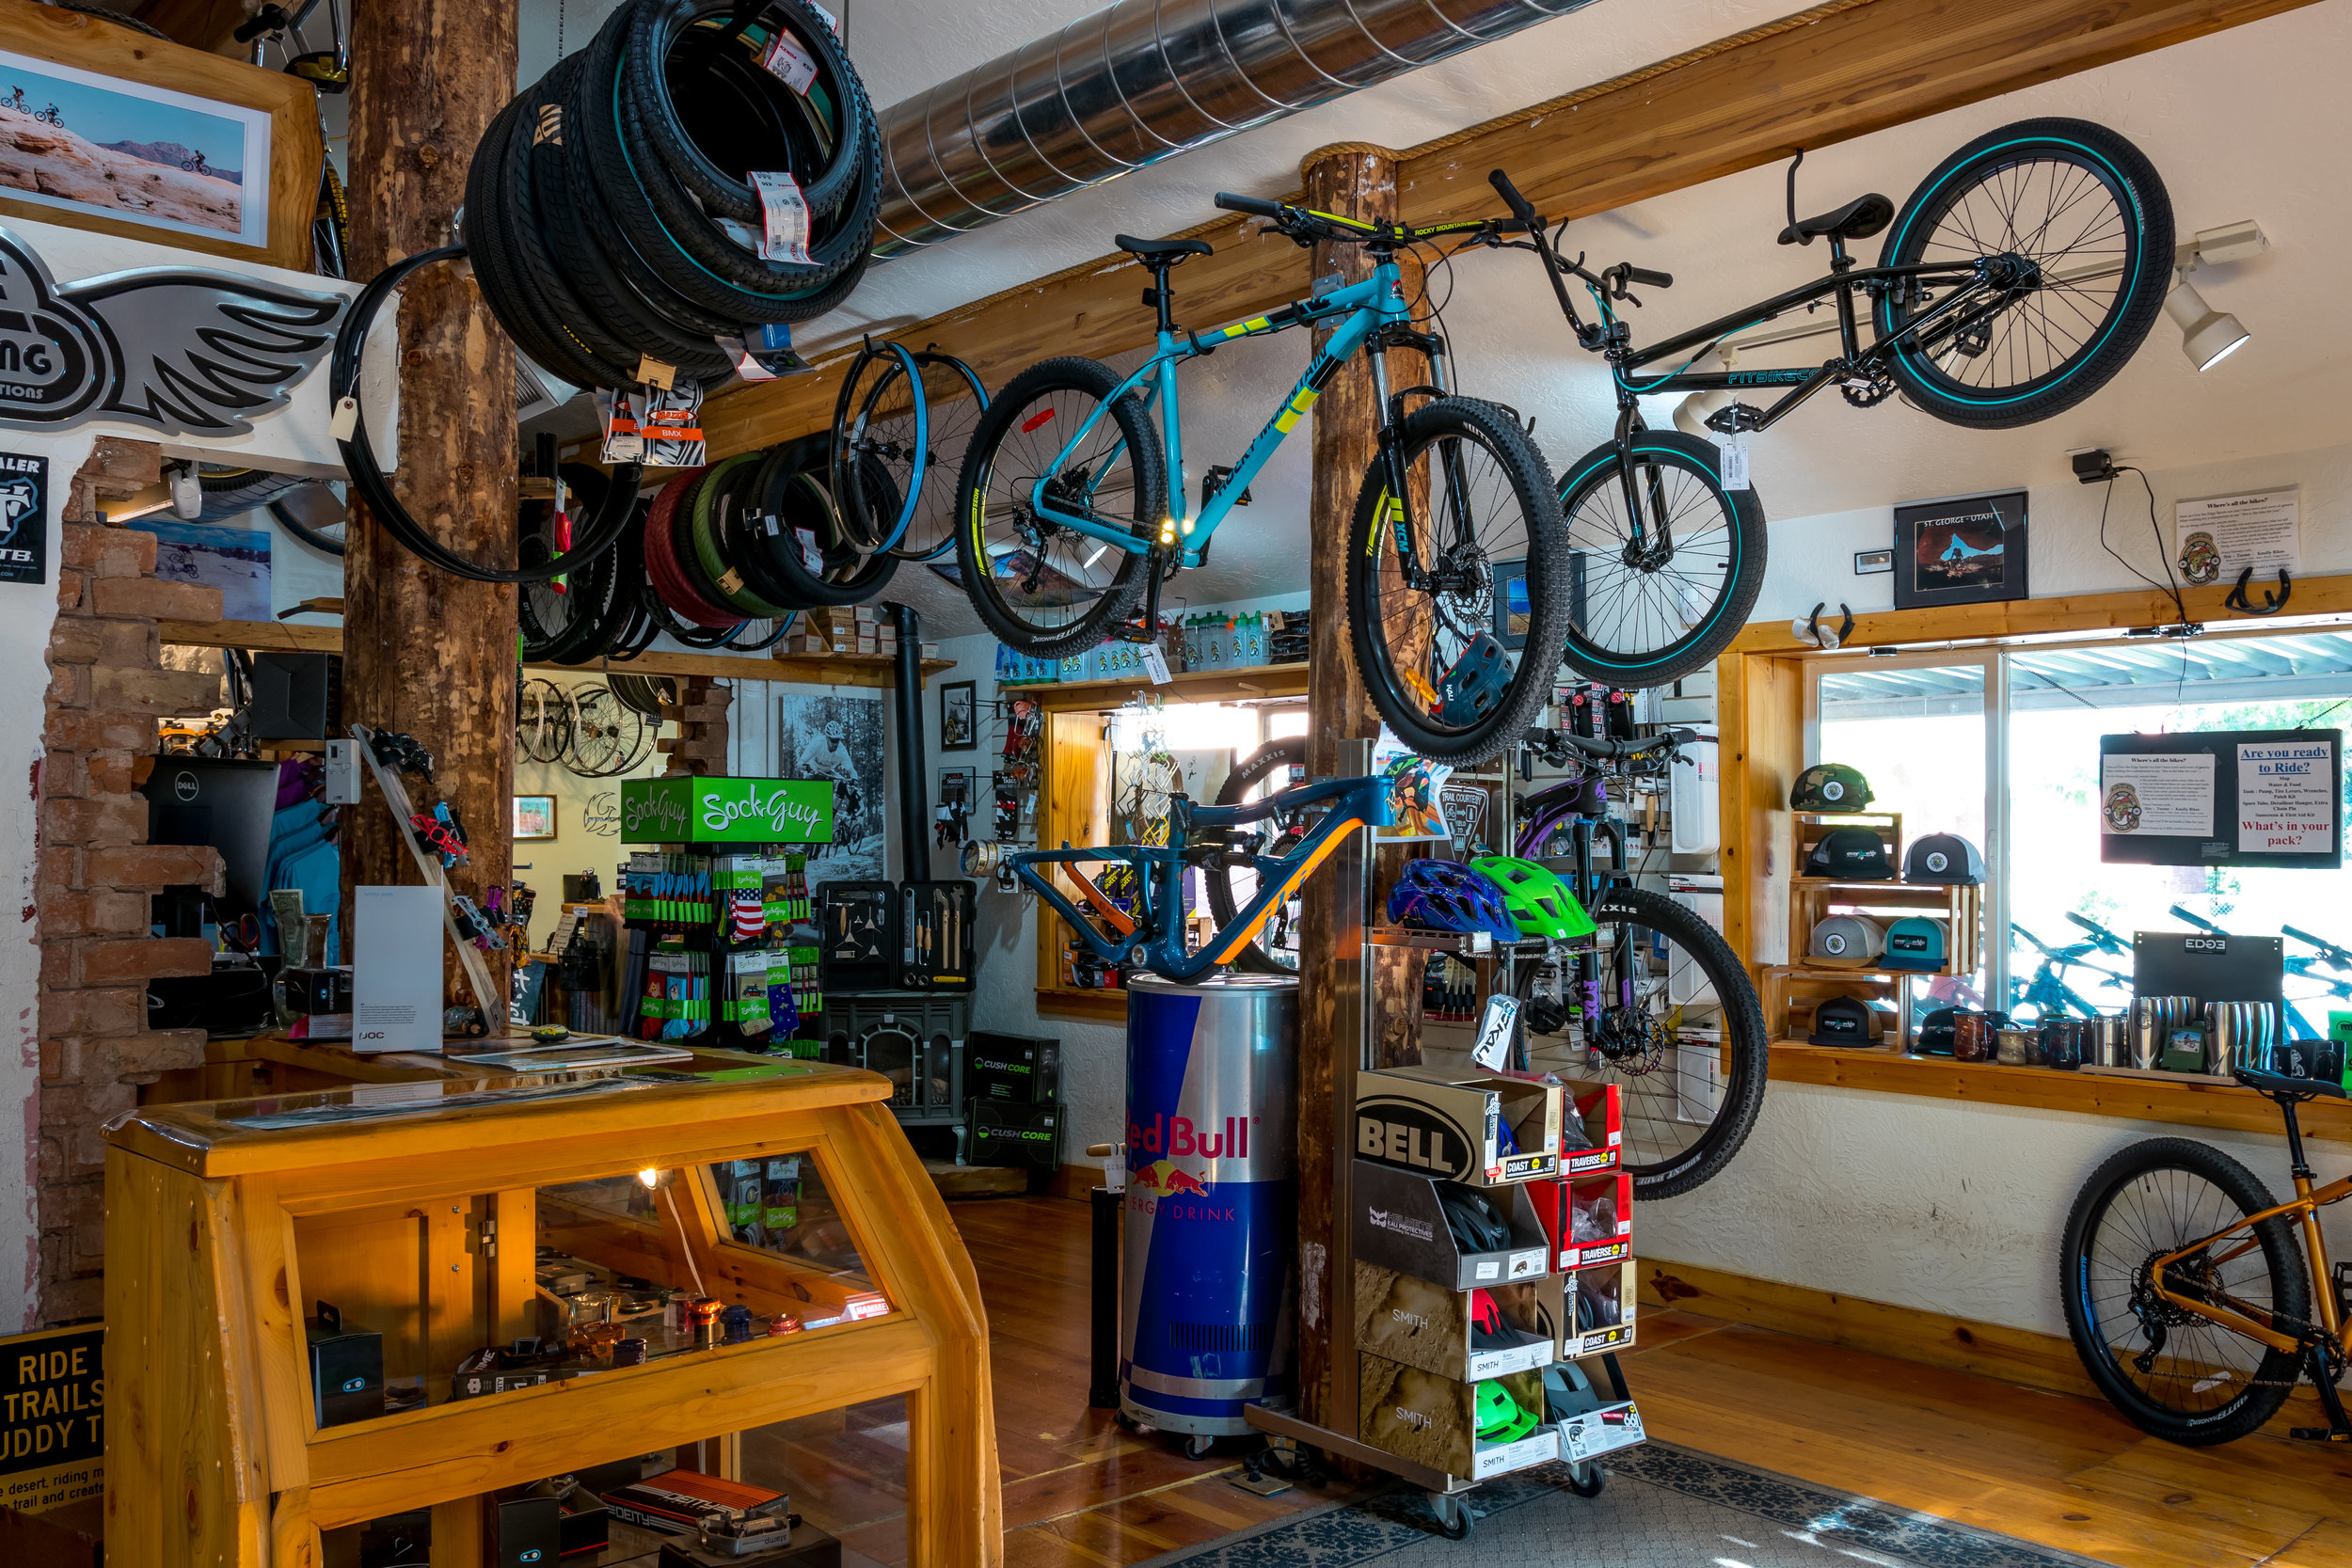 This is the coolest bike shop we've ever been to!